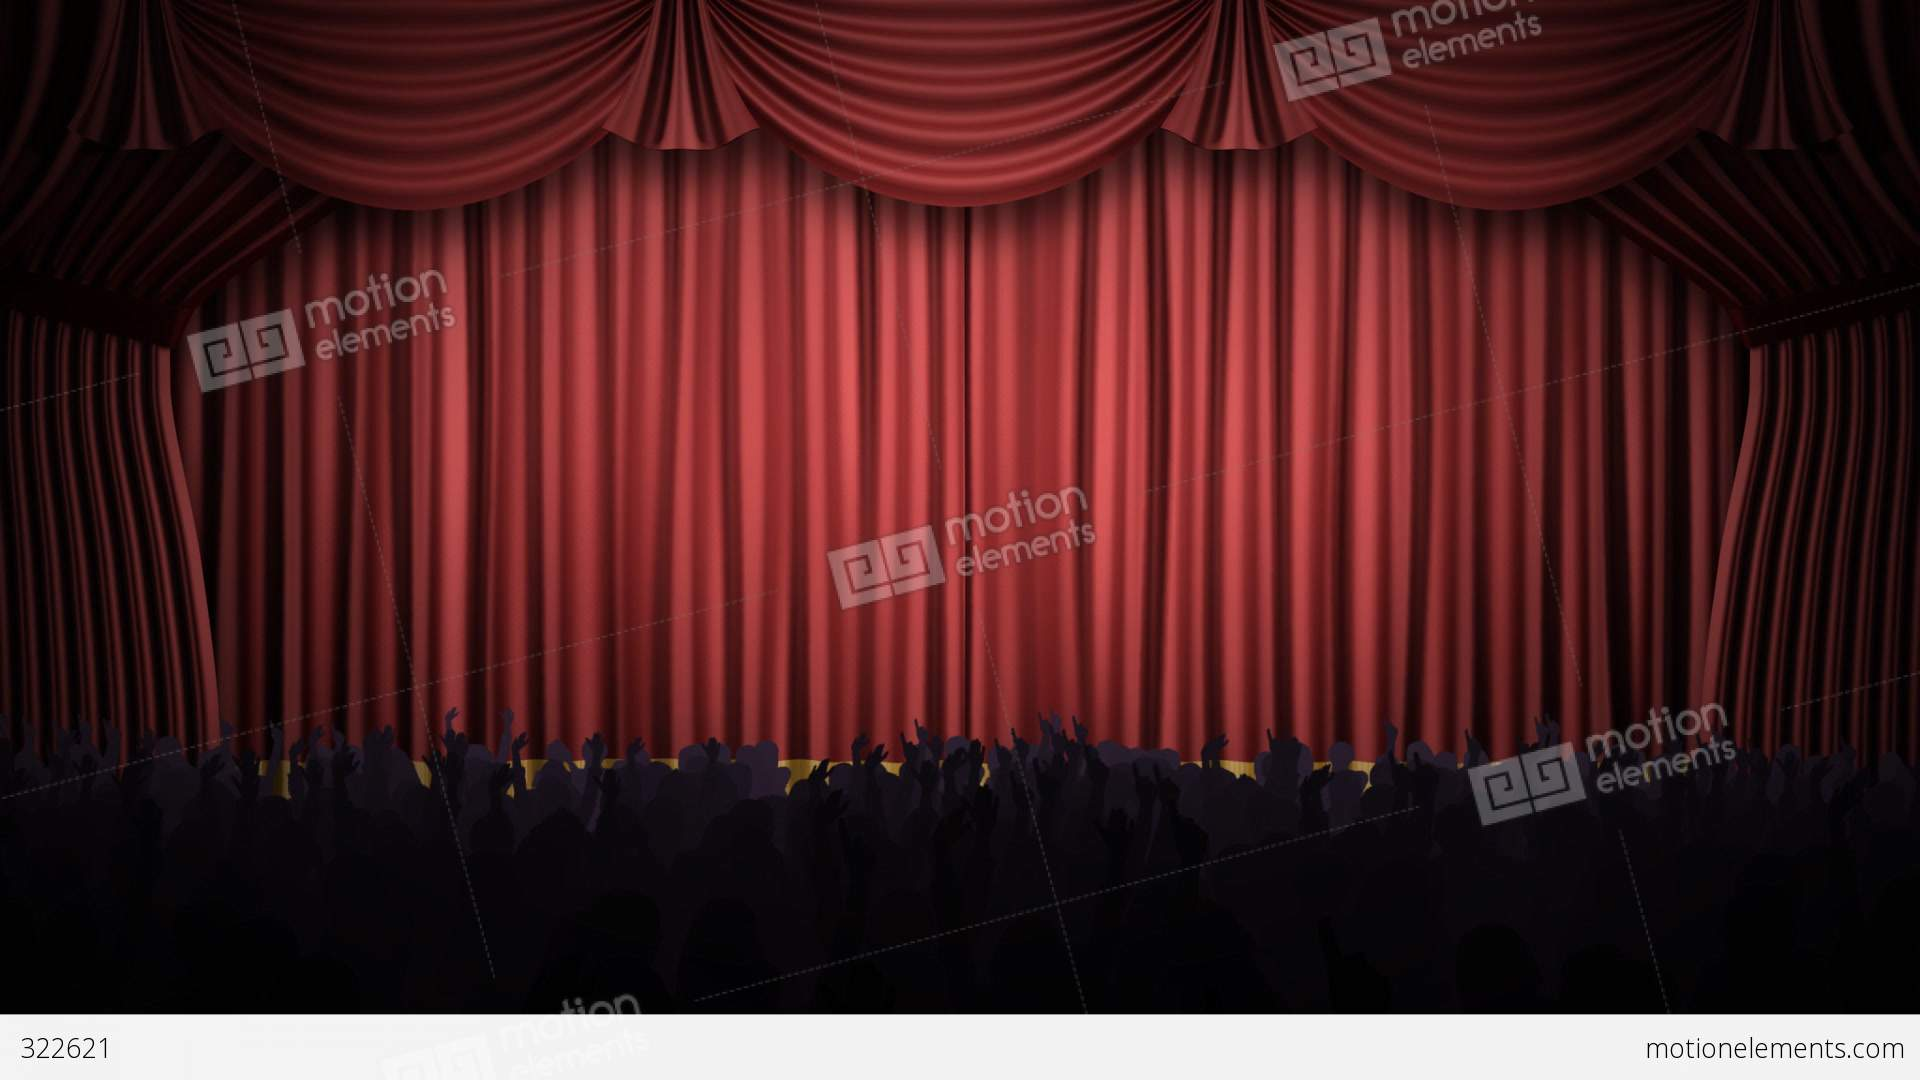 Opening and closing red curtain stock animation royalty free stock - Stage Curtain 2 Fb1 Stock Animation Royalty Free Stock Animation Stage Curtain 2 Fp1 Stock